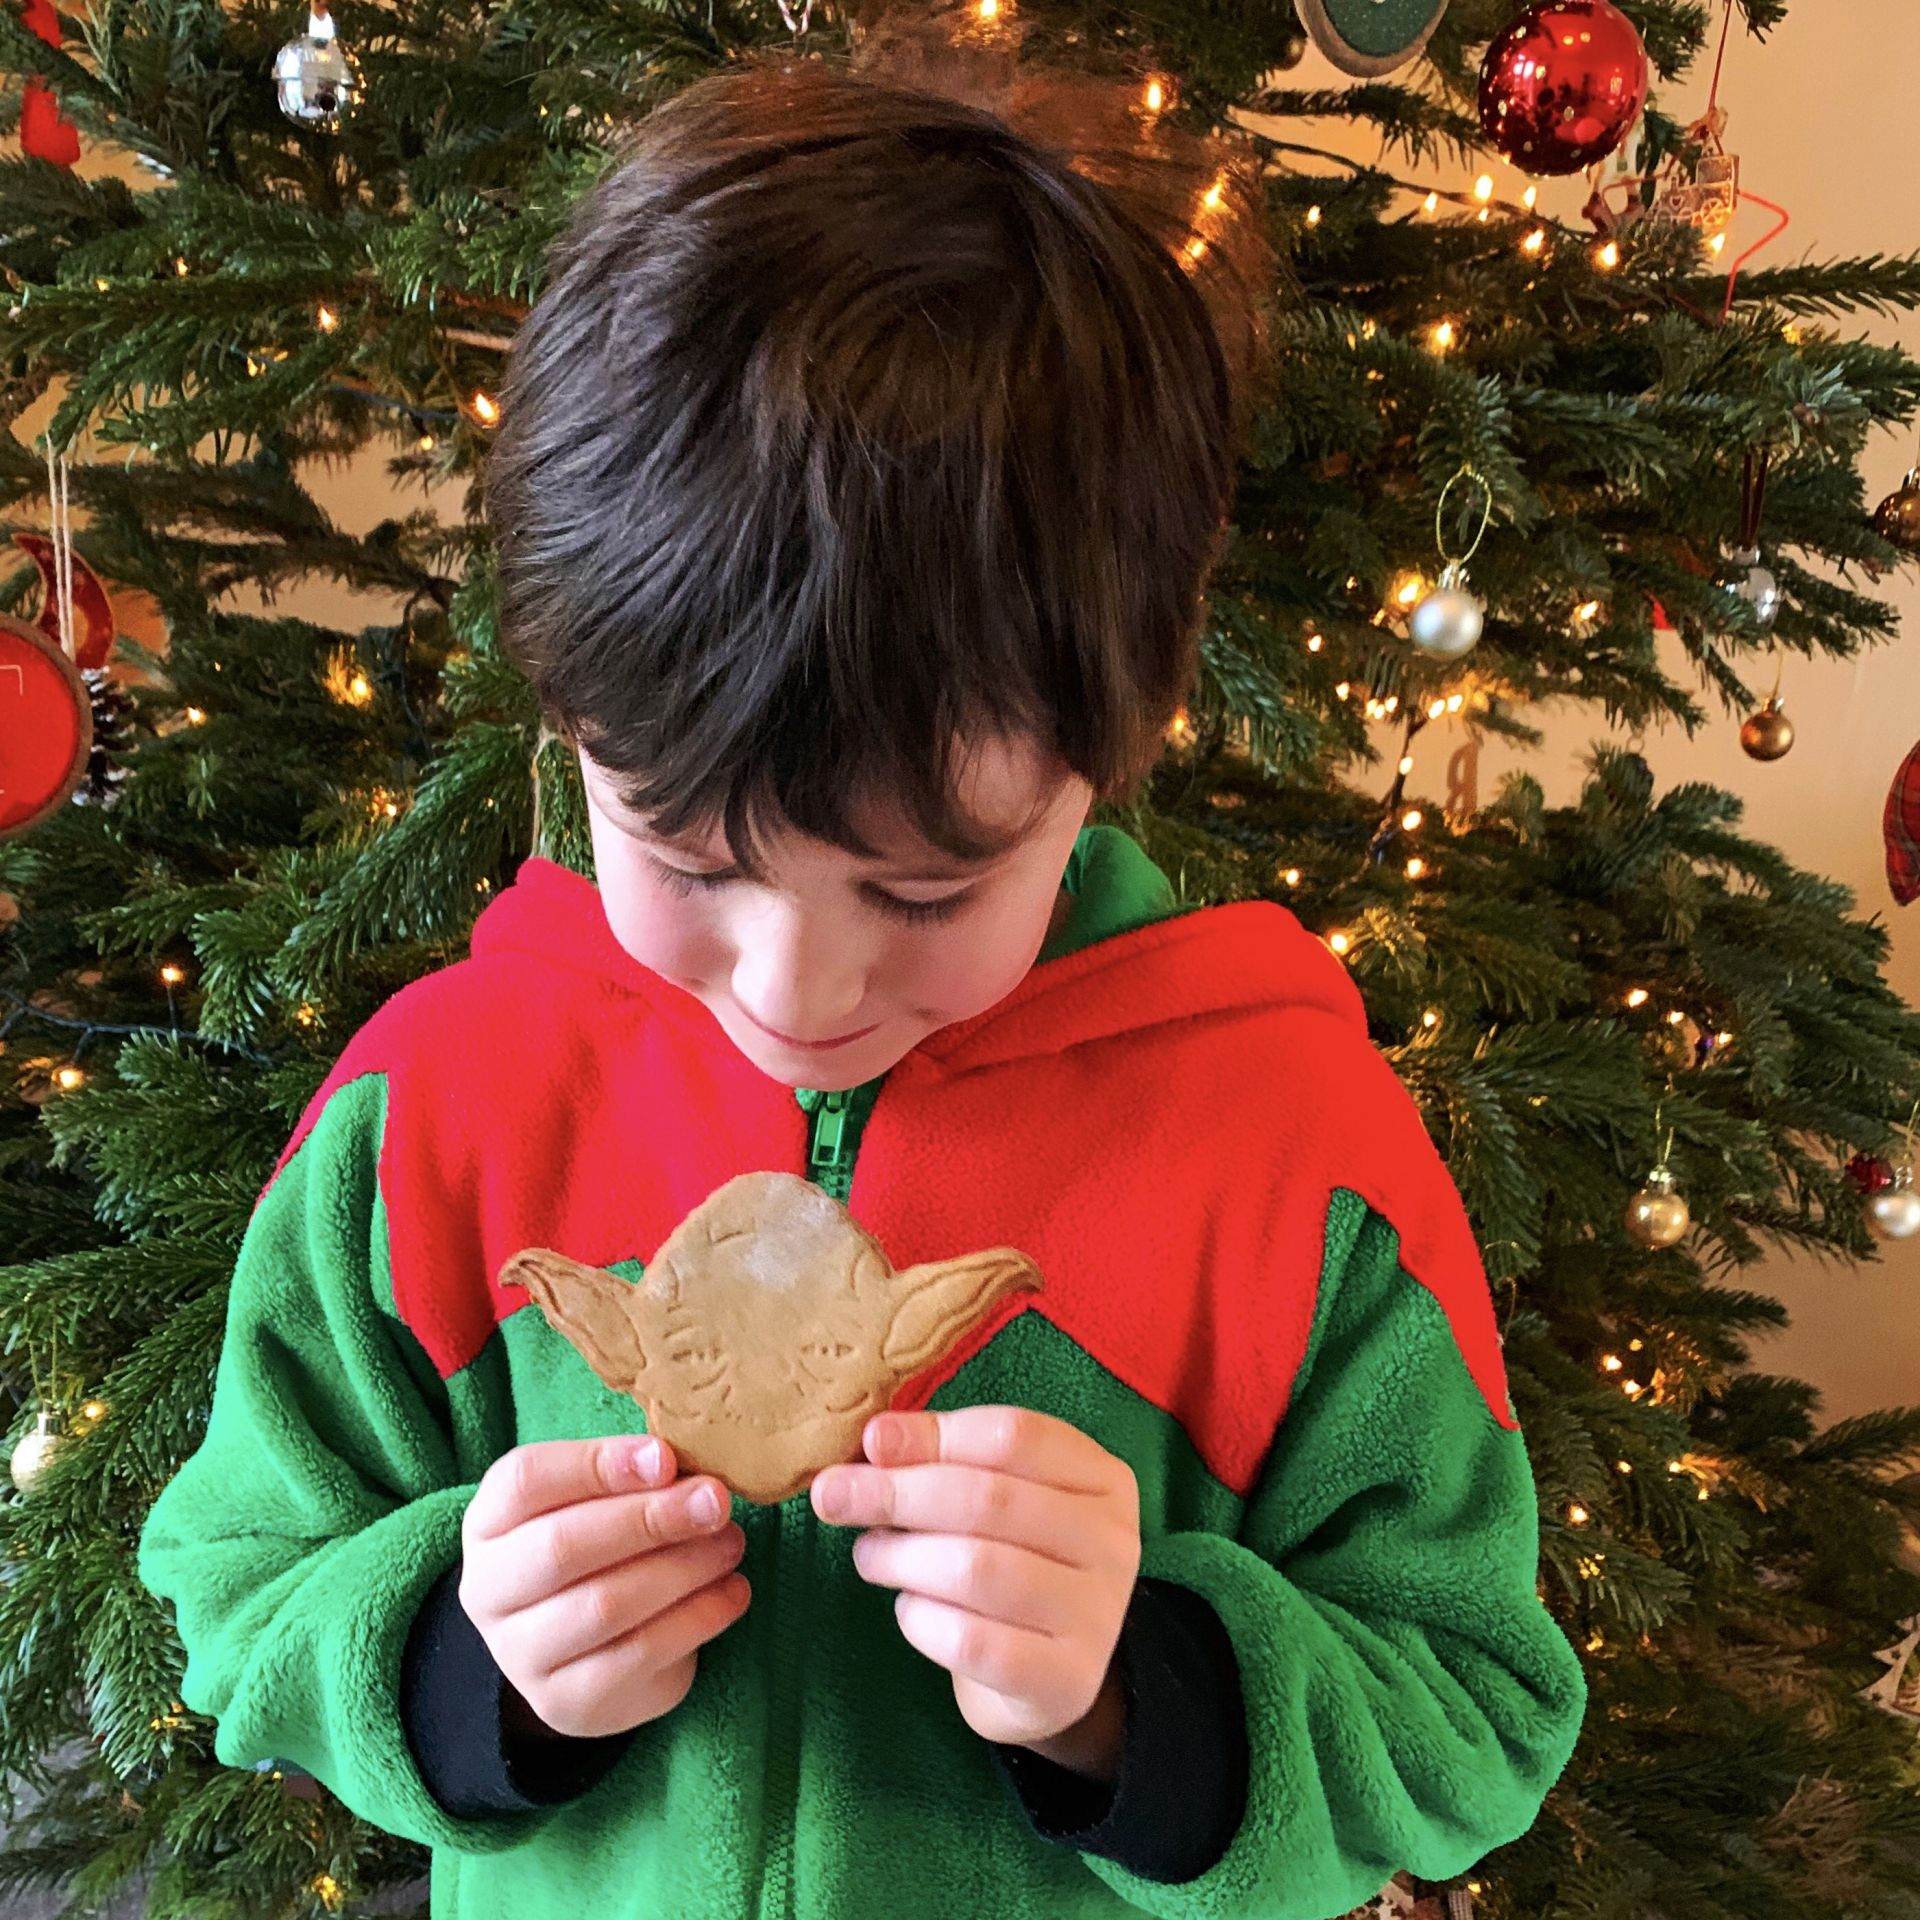 A boy holding a Yoda gingerbread biscuit